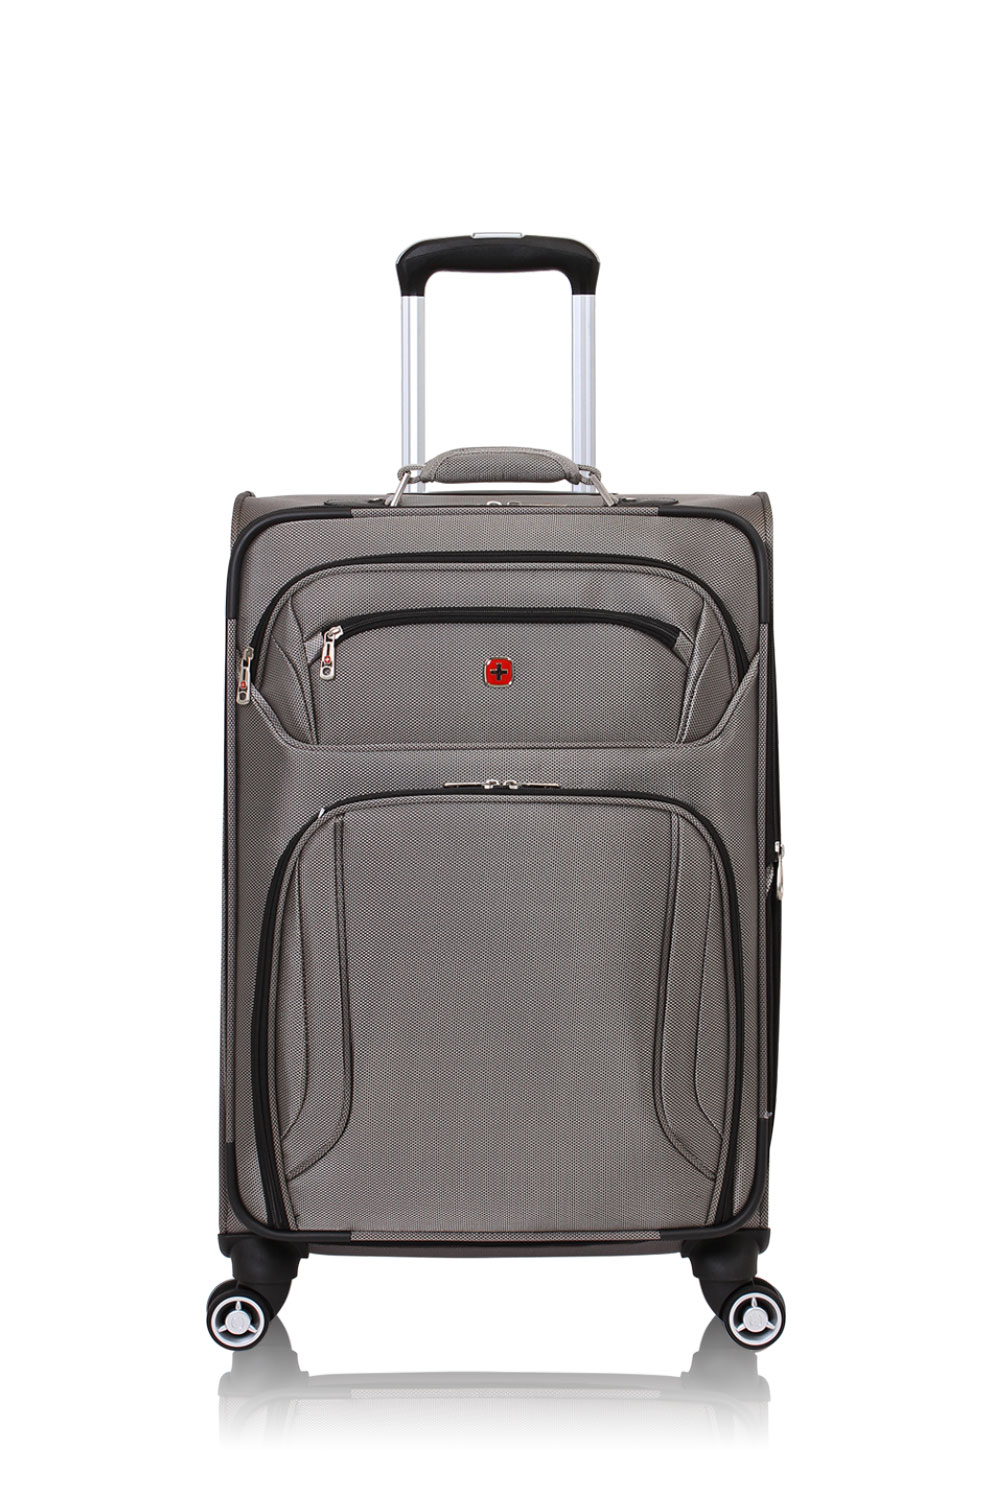 Swissgear 6283 25 Expandable Spinner Luggage